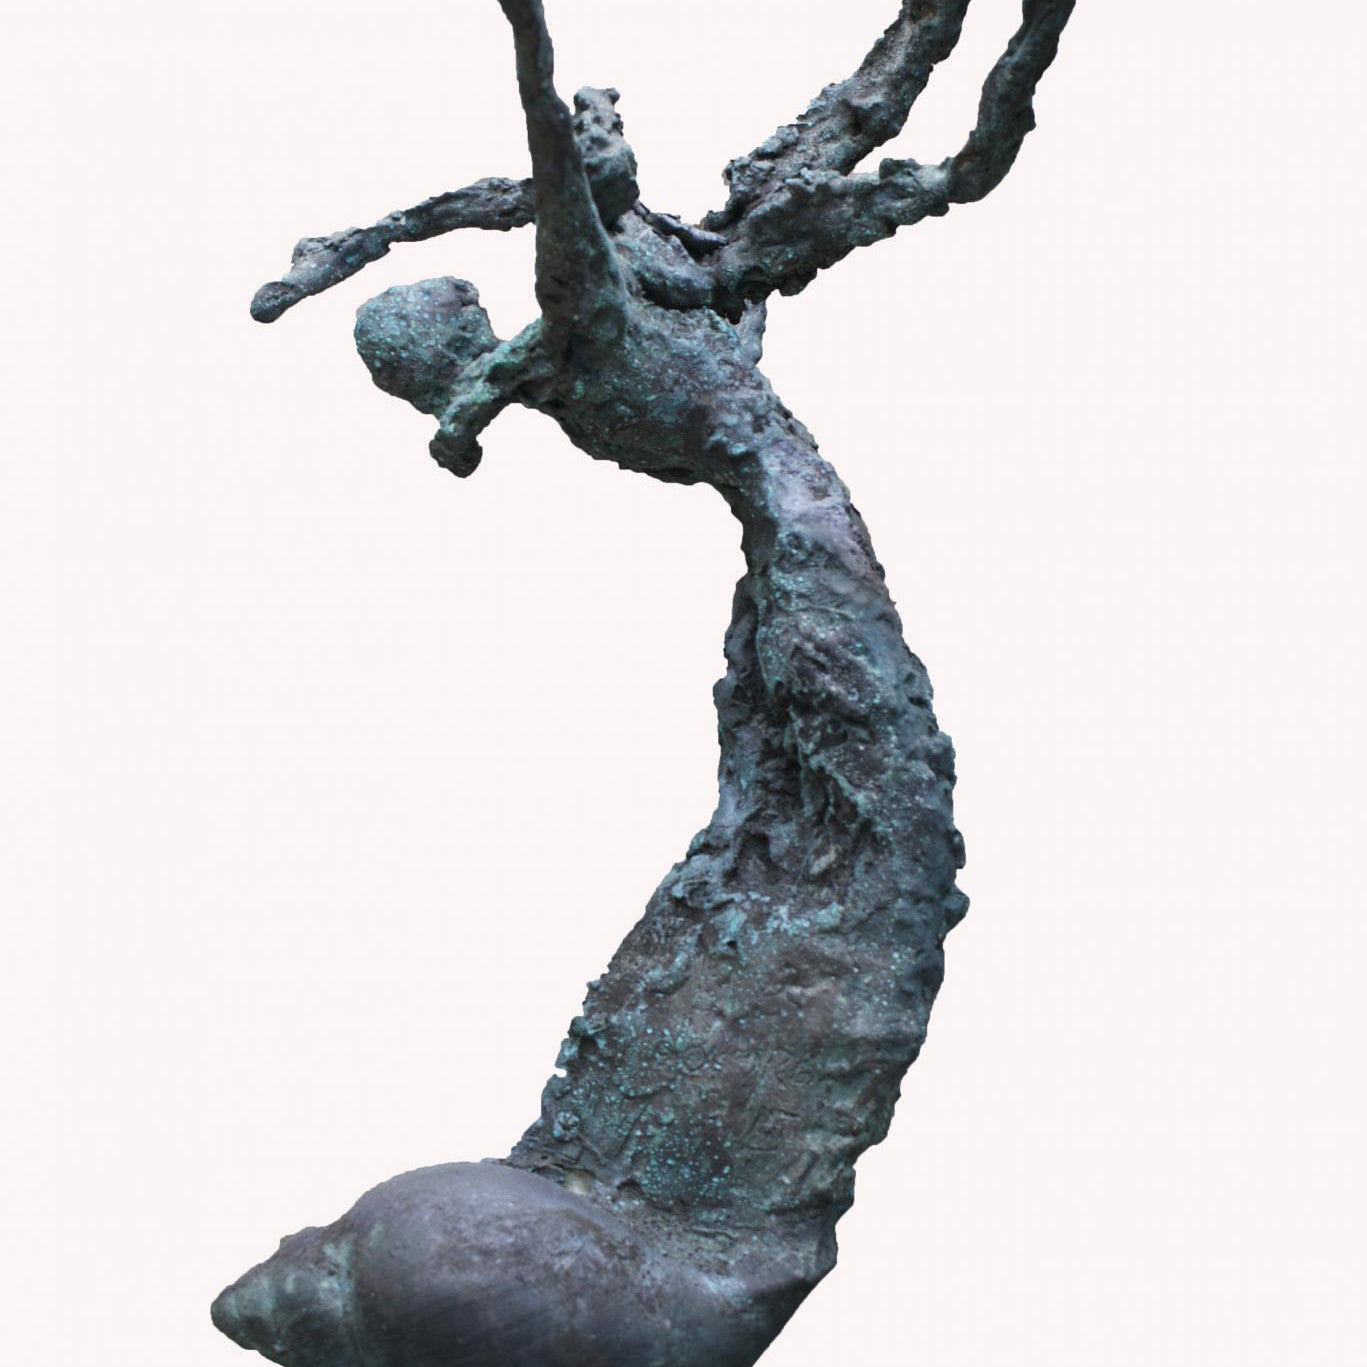 Reunion sculpture - Emmanuel Okoro